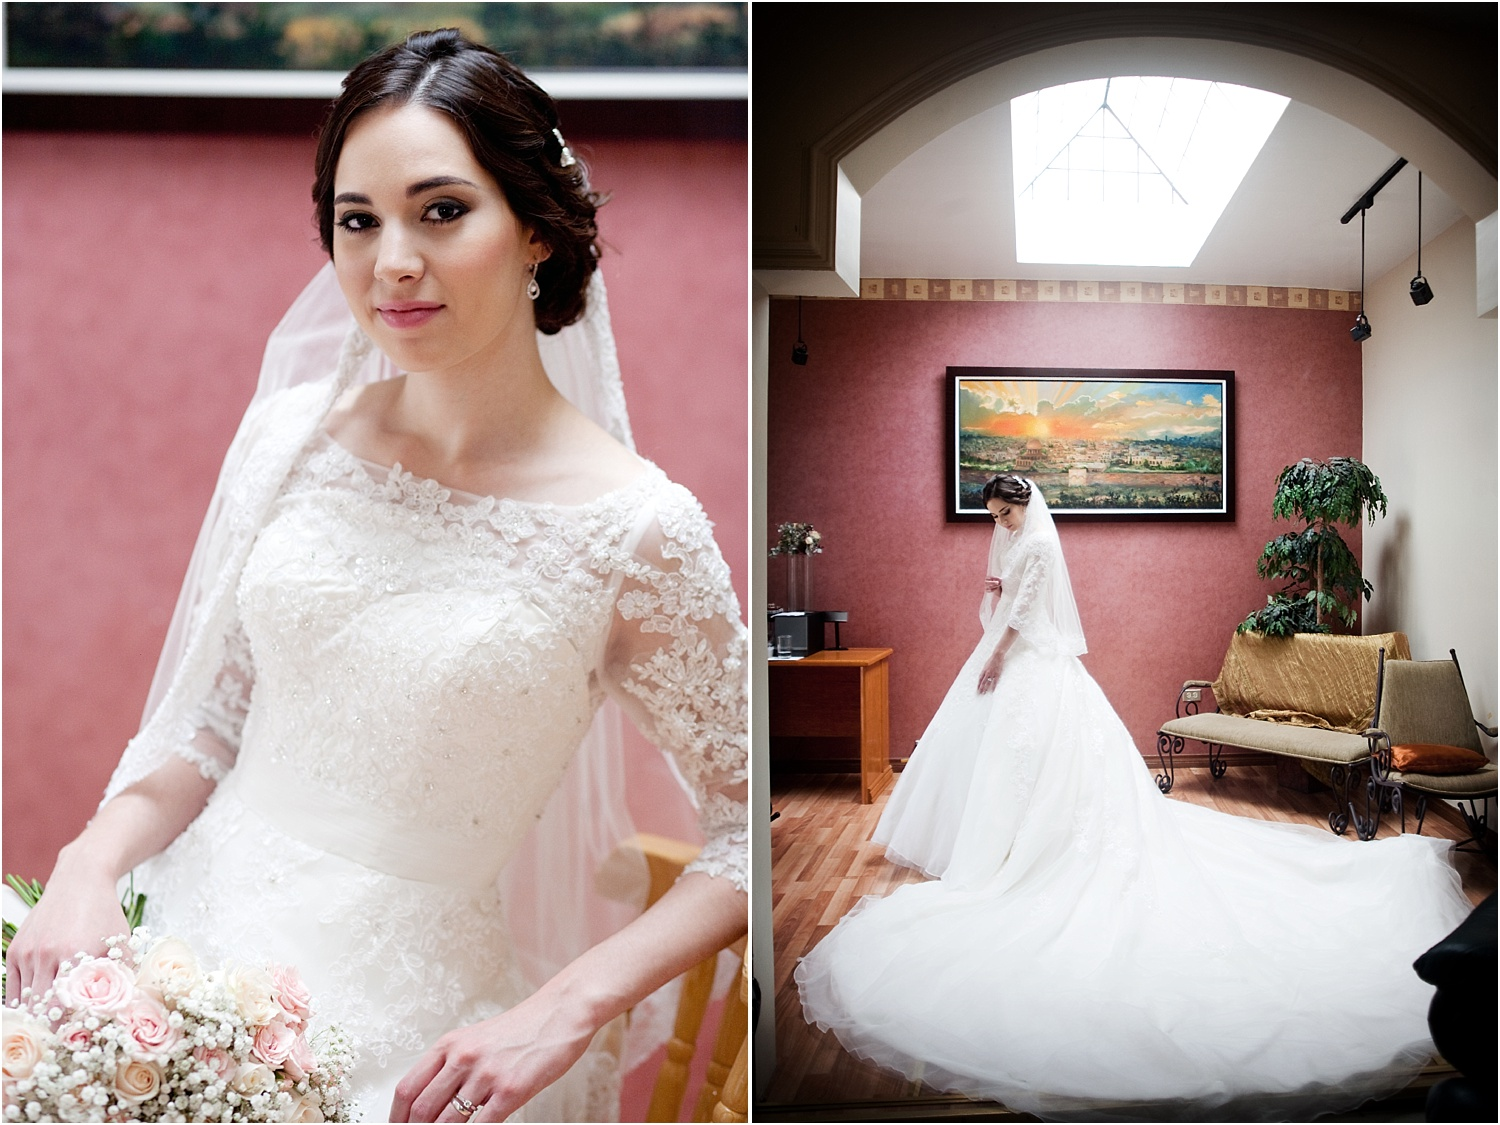 Tips for Better Bridal Portraits - two photos of brides in a pink room